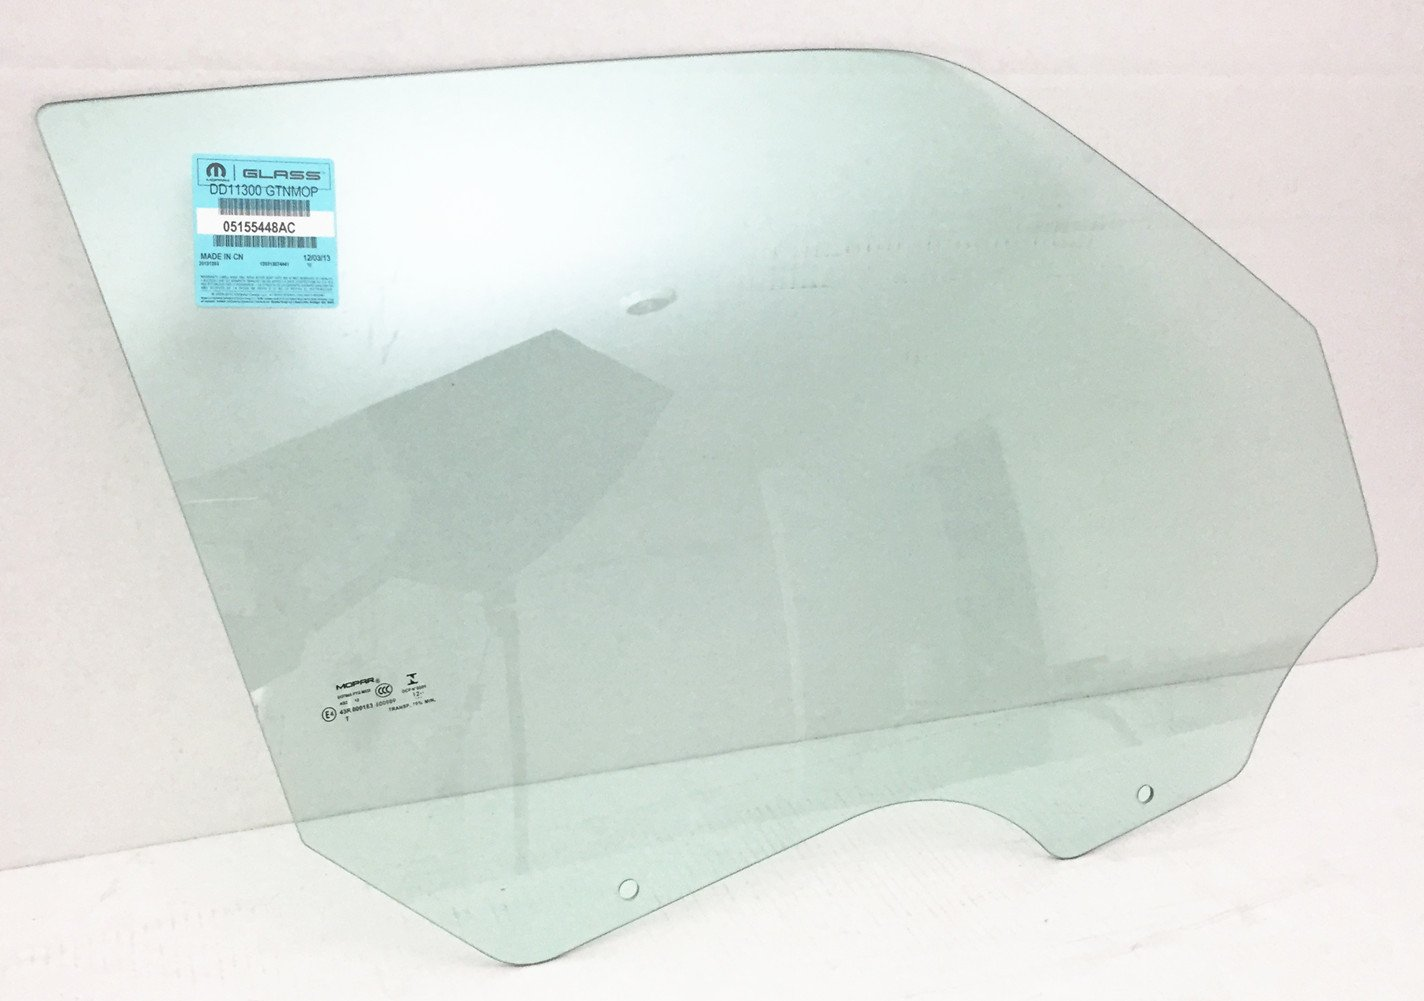 NAGD Fits 2002-2007 Jeep Liberty 4 Door SUV Passenger Side Right Front Door Window Glass